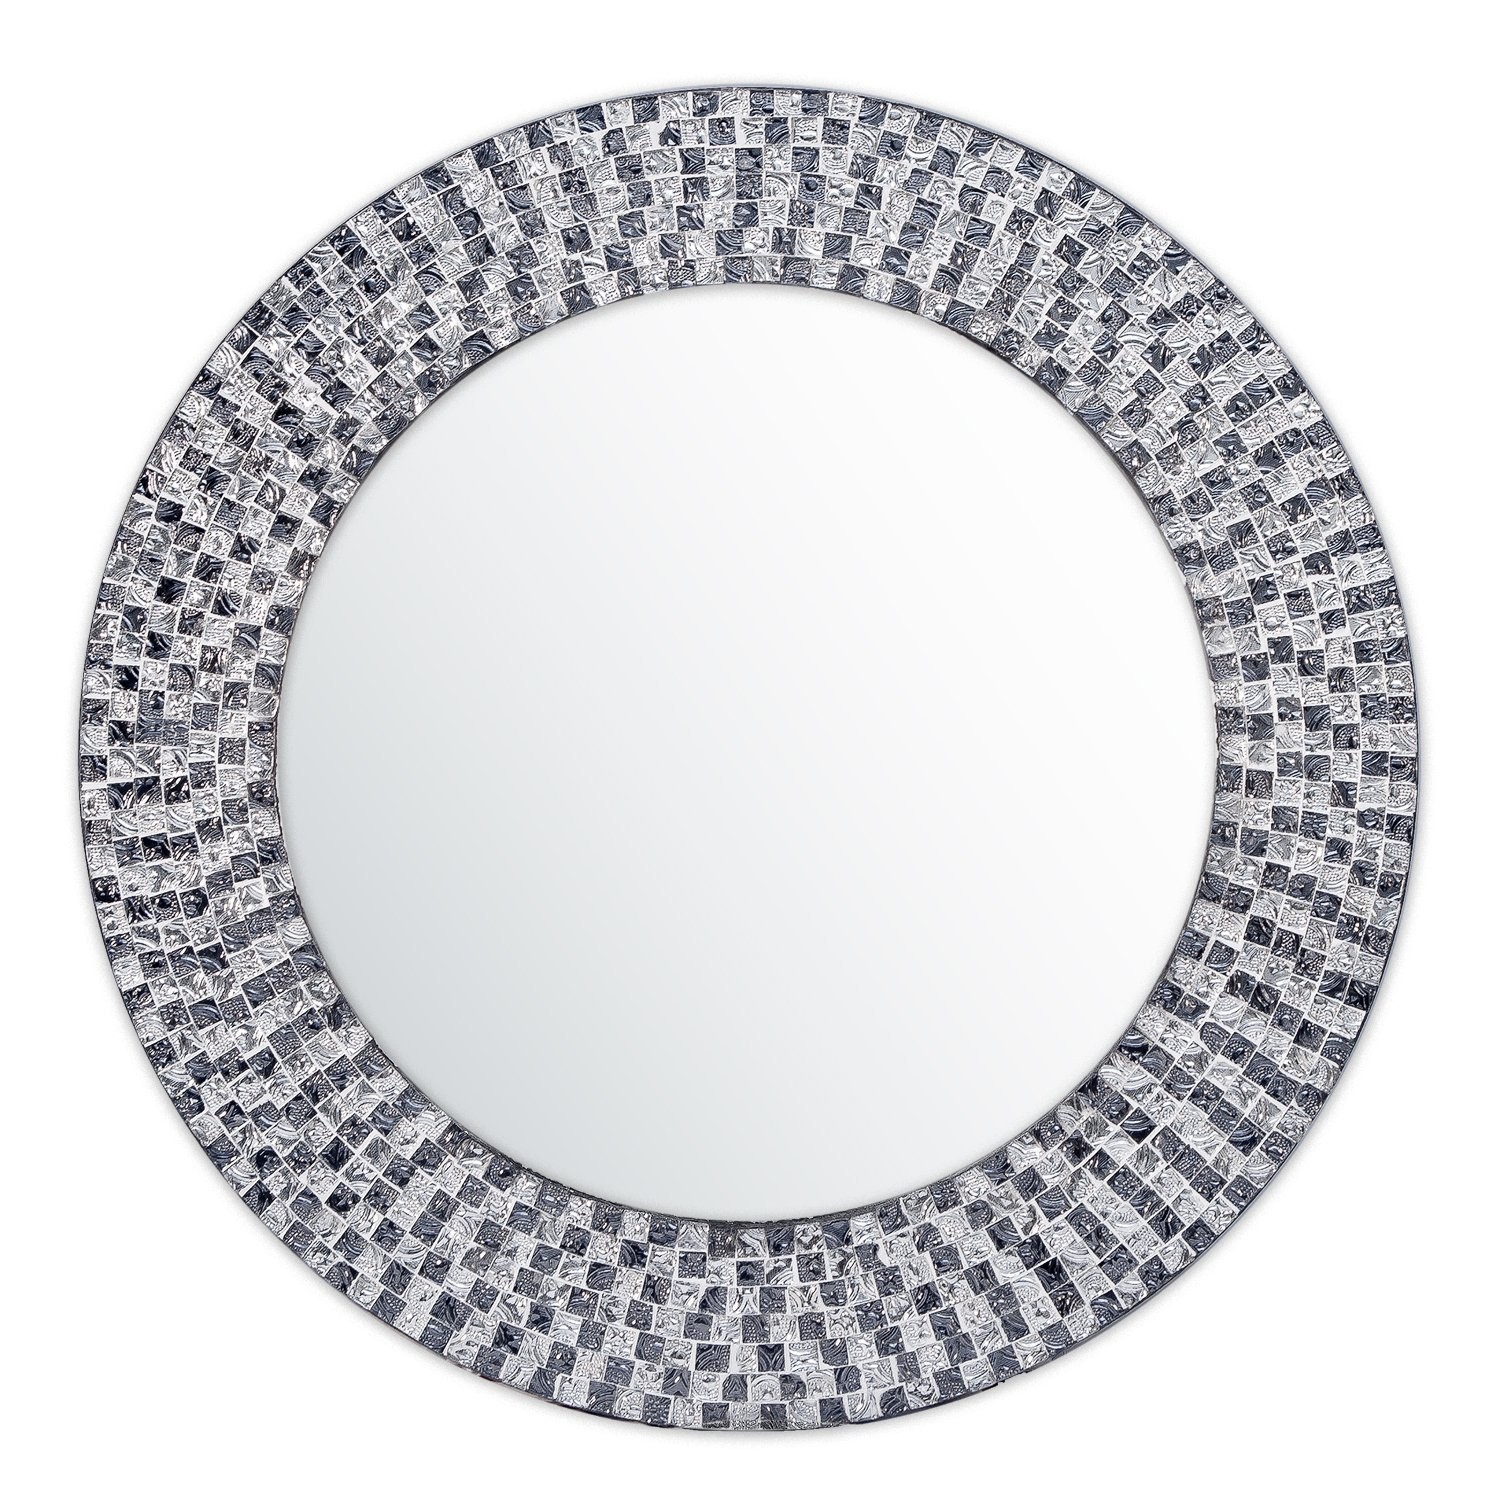 "Decorshore 20"" Jewel Tone Accent Mirror, Round Decorative Wall Mirror  Embossed Glass Mosaic Tile Frame (Onyx Black & Silver Topaz) With Regard To Silver Frame Accent Mirrors (Photo 18 of 30)"